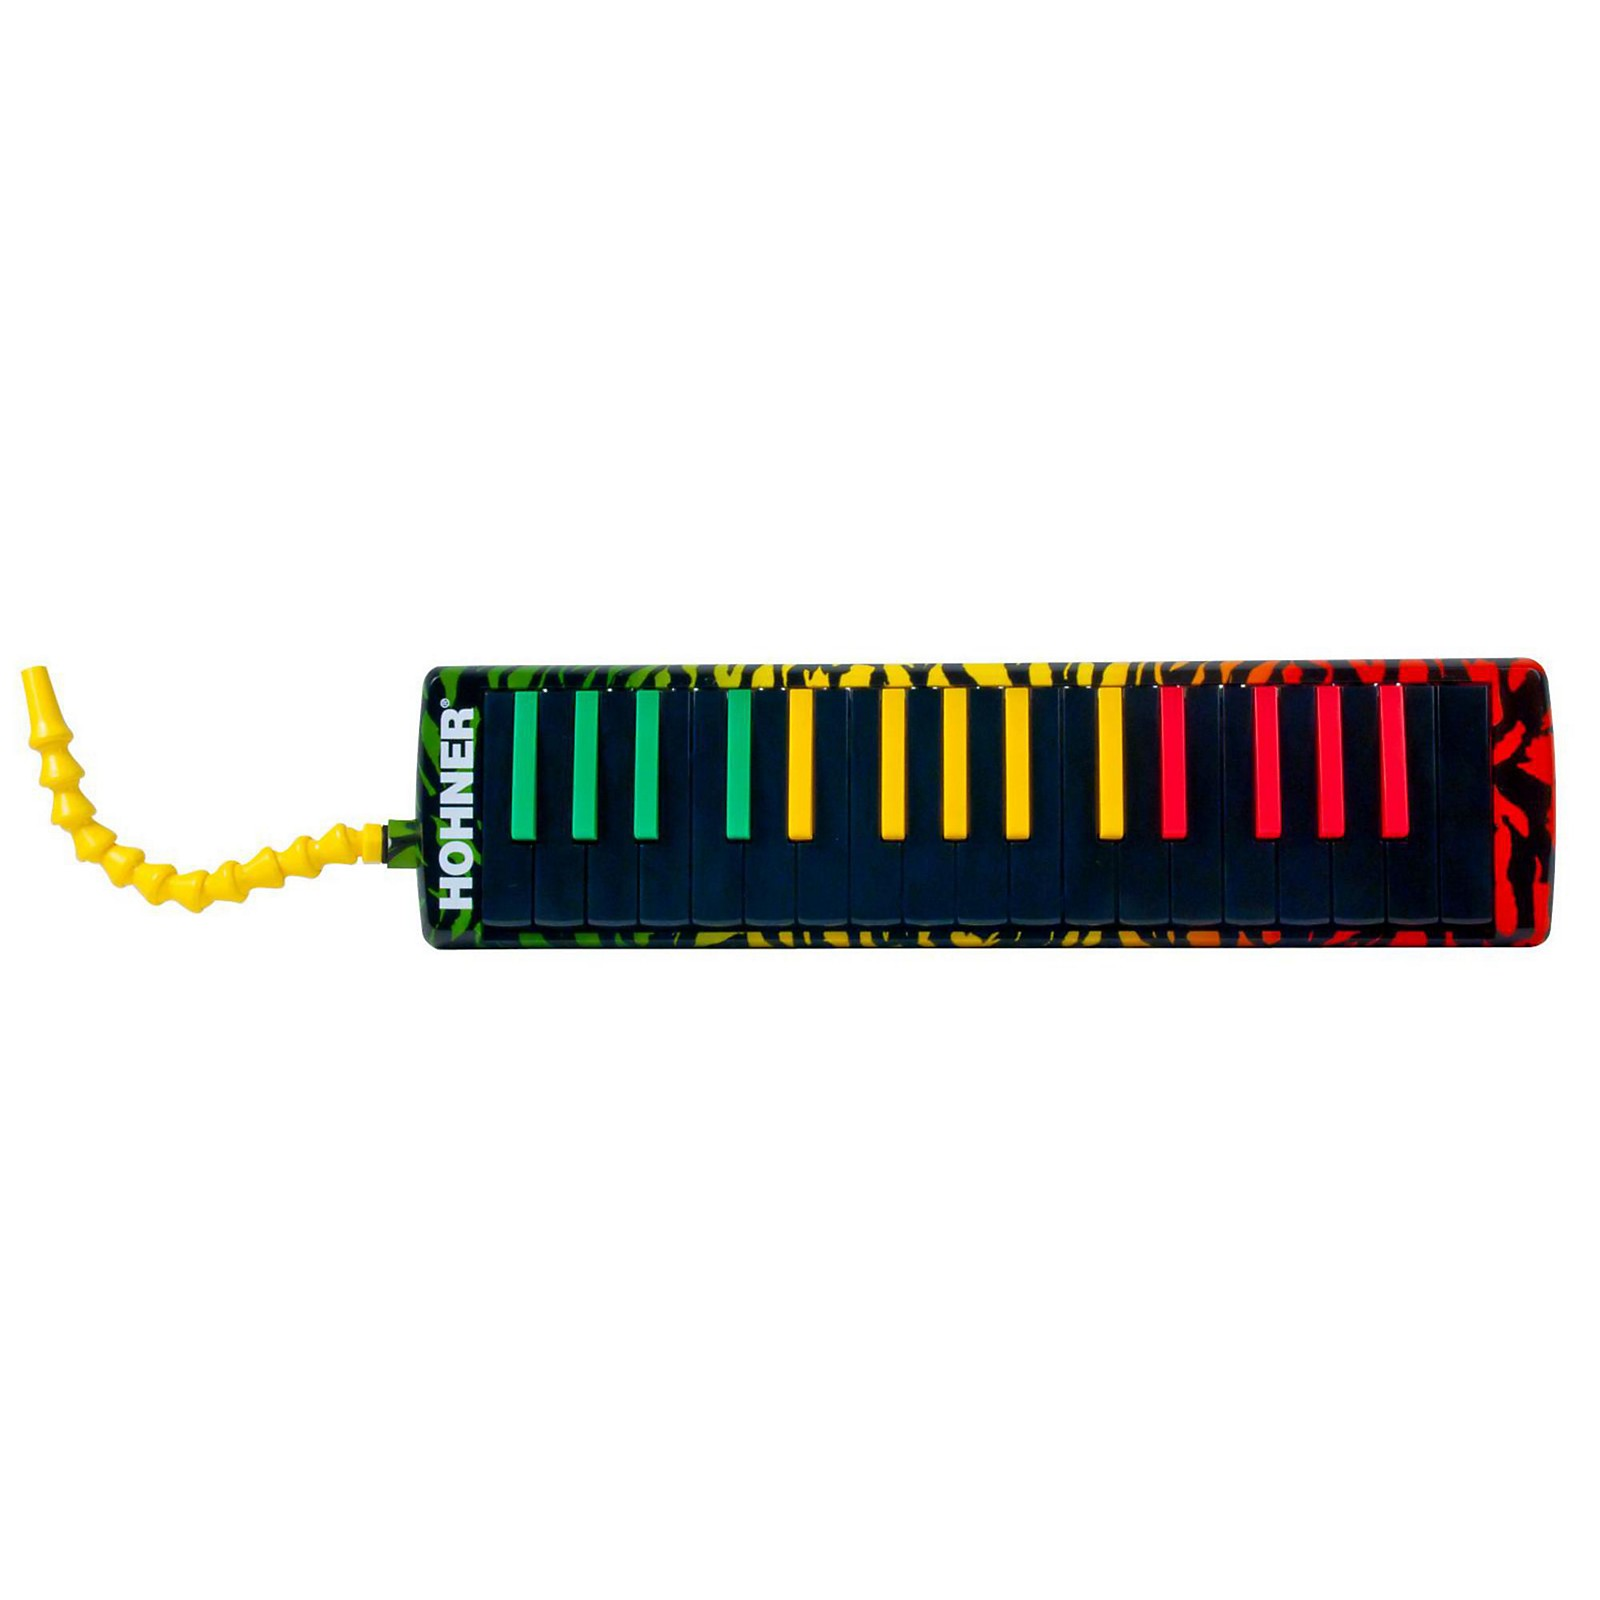 Hohner Airboard Rasta Print With Bag And Blowflow Mouthpeice